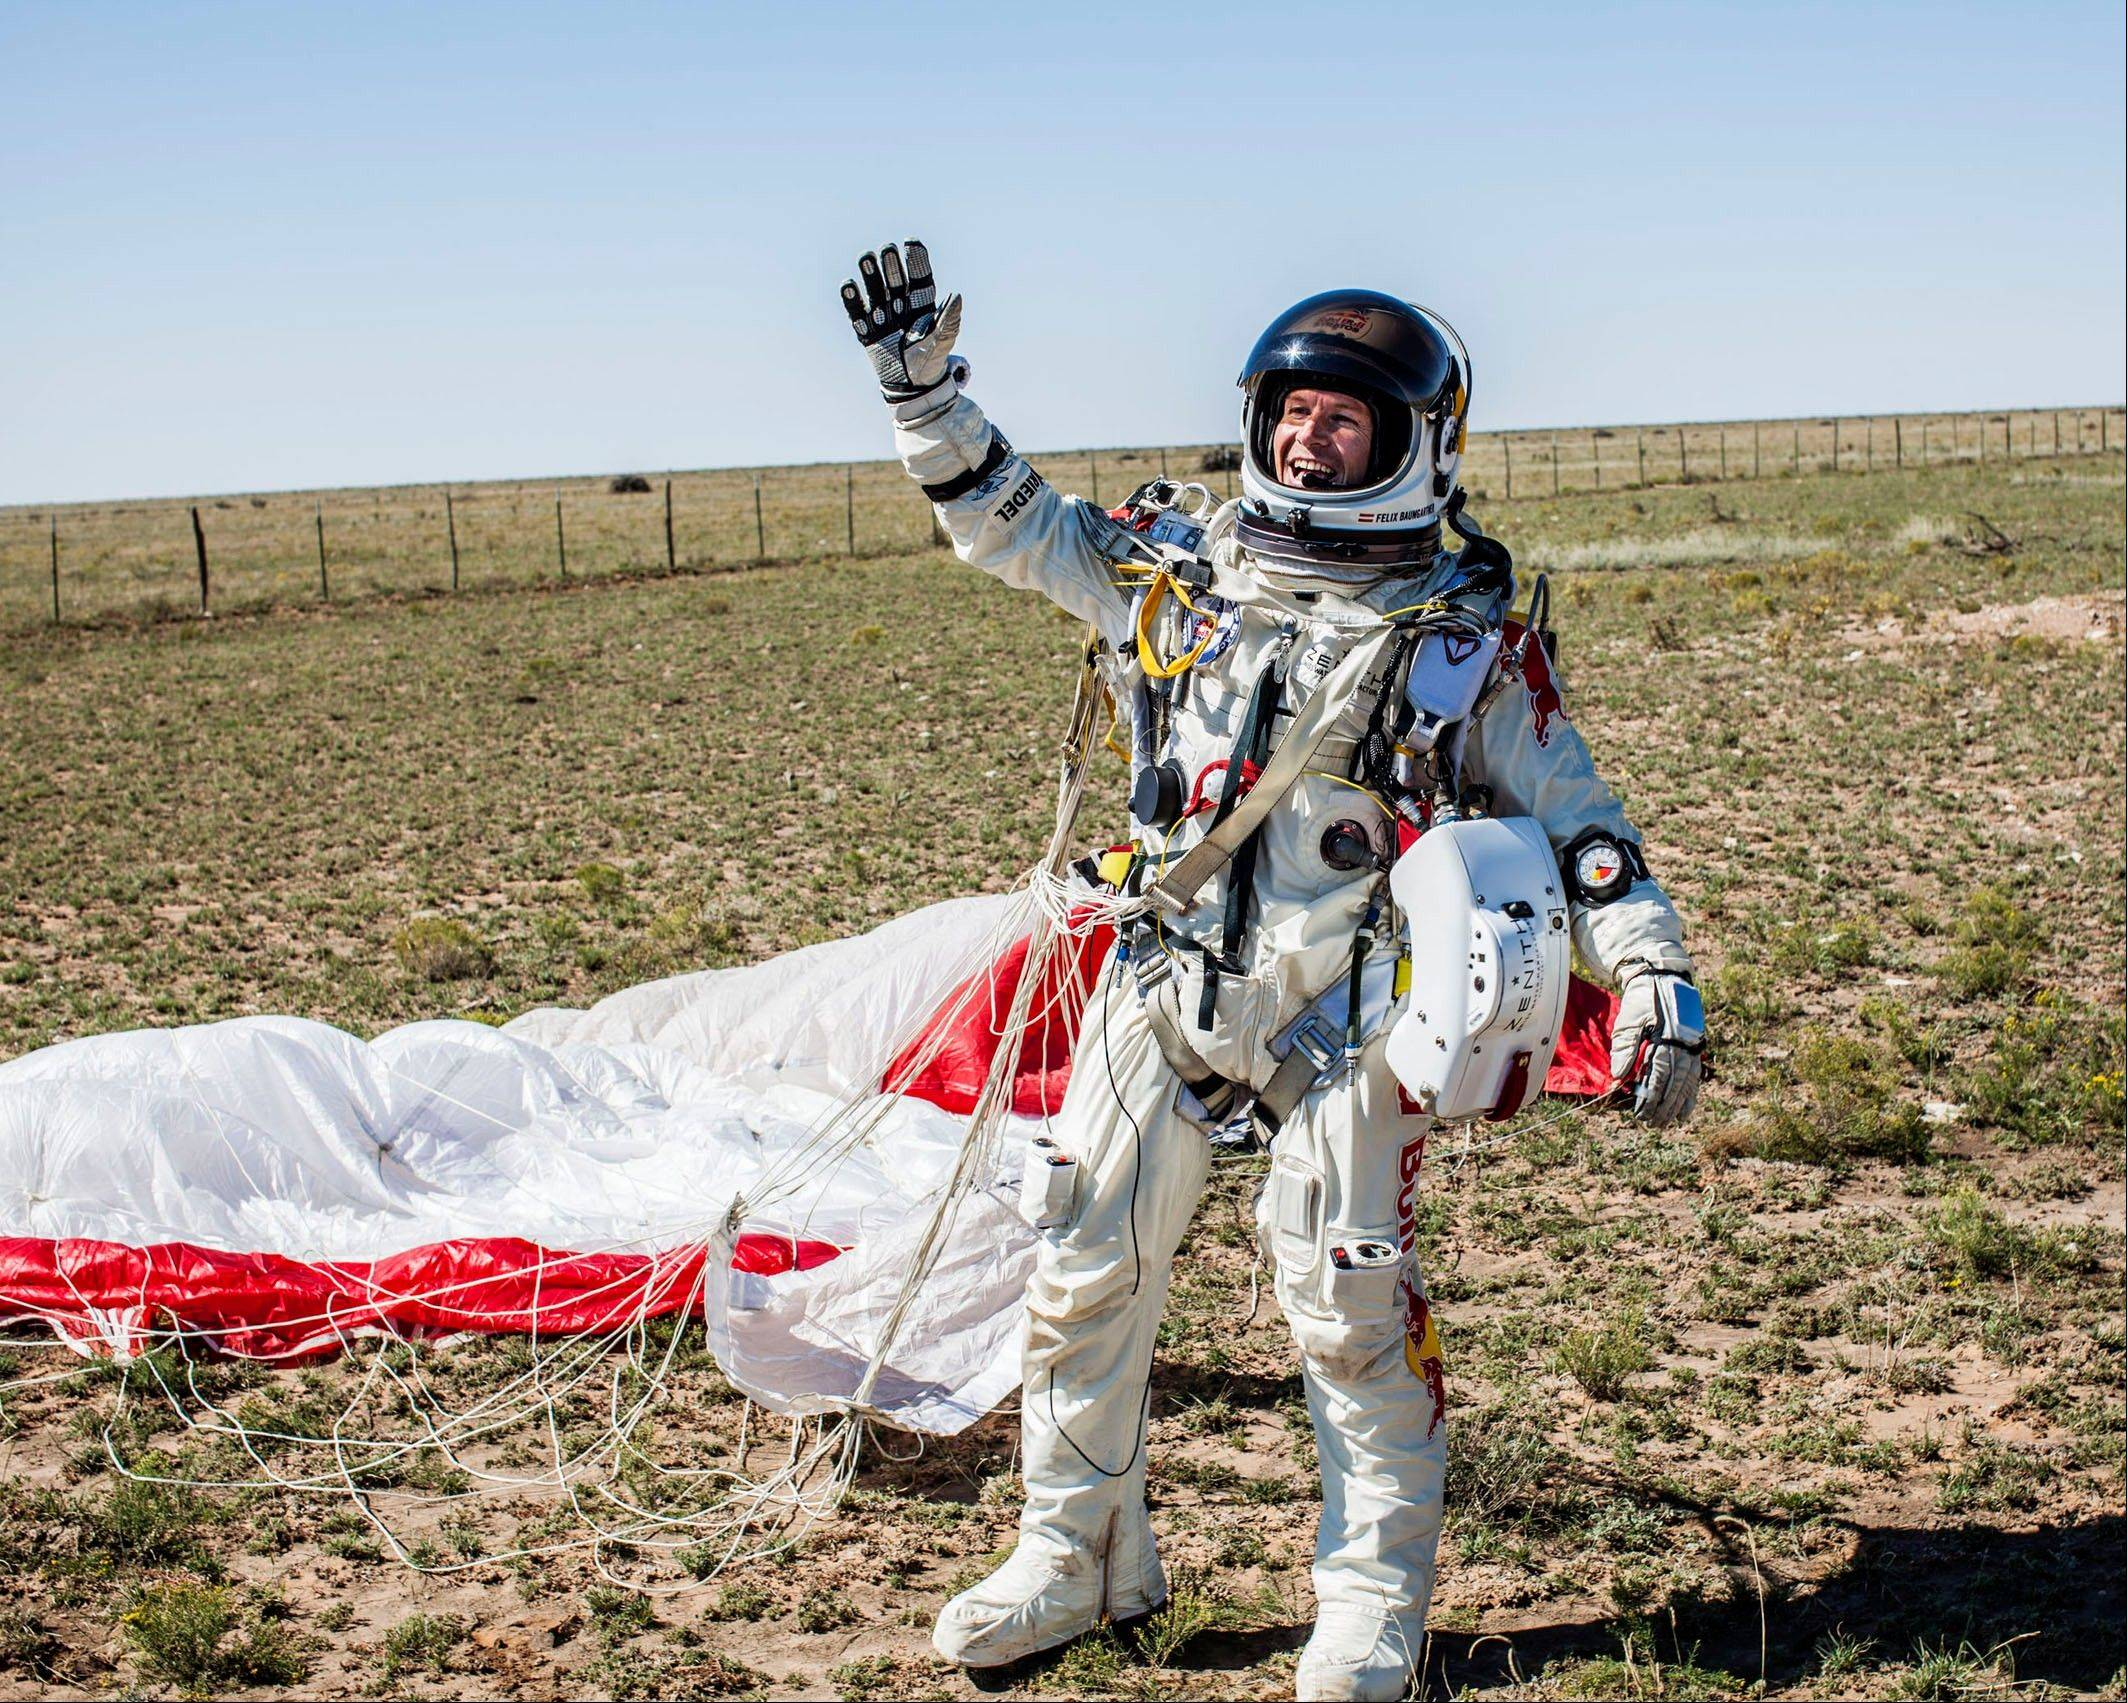 In this photo provided by Red Bull Stratos, Pilot Felix Baumgartner of Austria celebrates after successfully completing the final manned flight for Red Bull Stratos in Roswell, N.M., Sunday, Oct. 14, 2012.�Baumgartner came down safely in the eastern New Mexico desert minutes about nine minutes after jumping from his capsule 128,097 feet, or roughly 24 miles, above Earth.